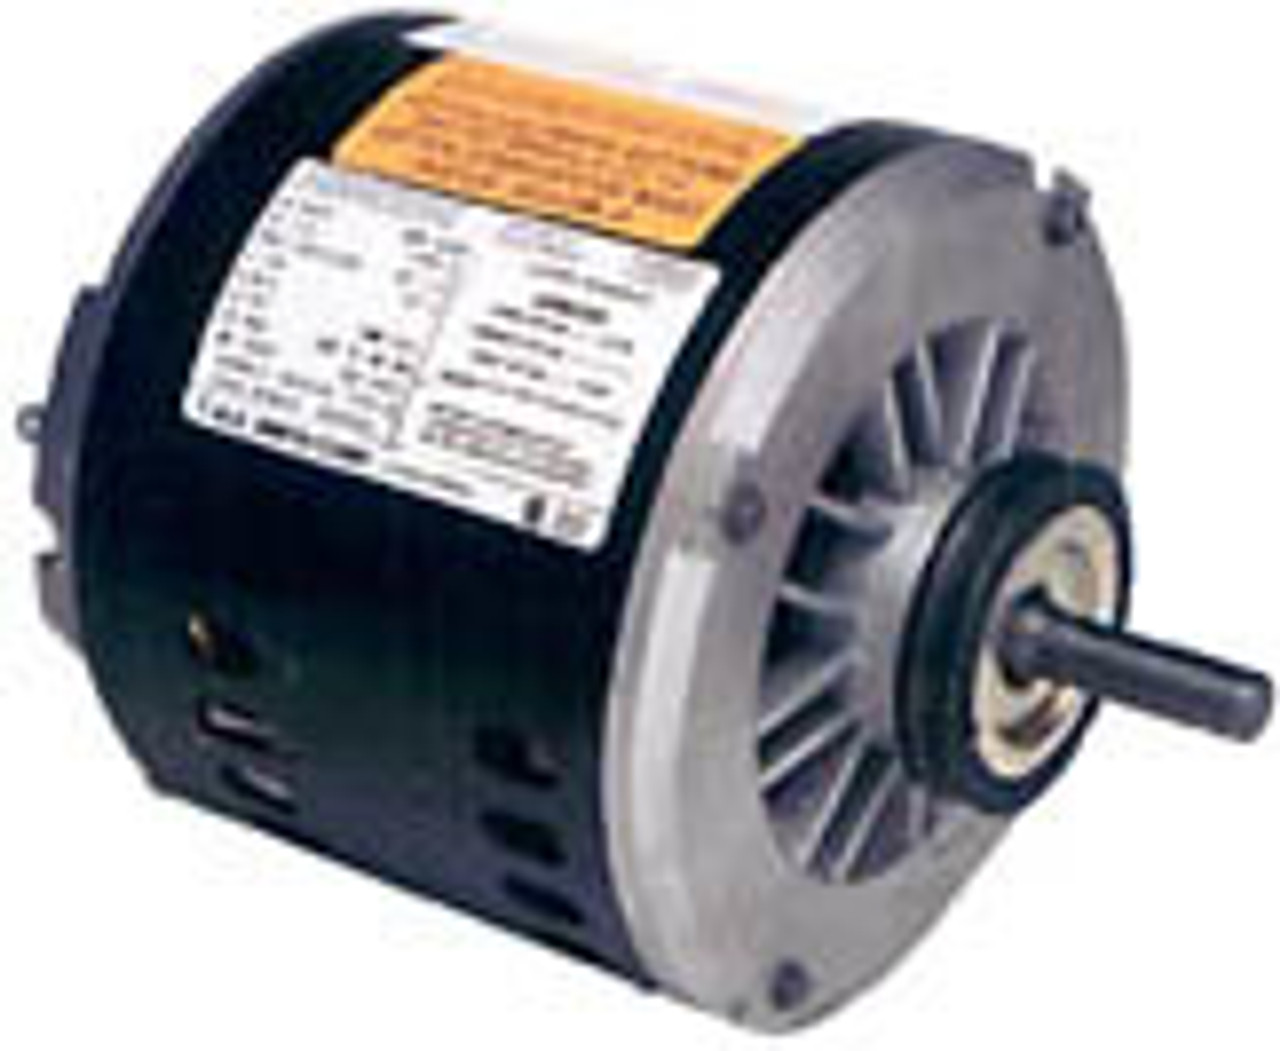 Cooler Motors - 240 Volt